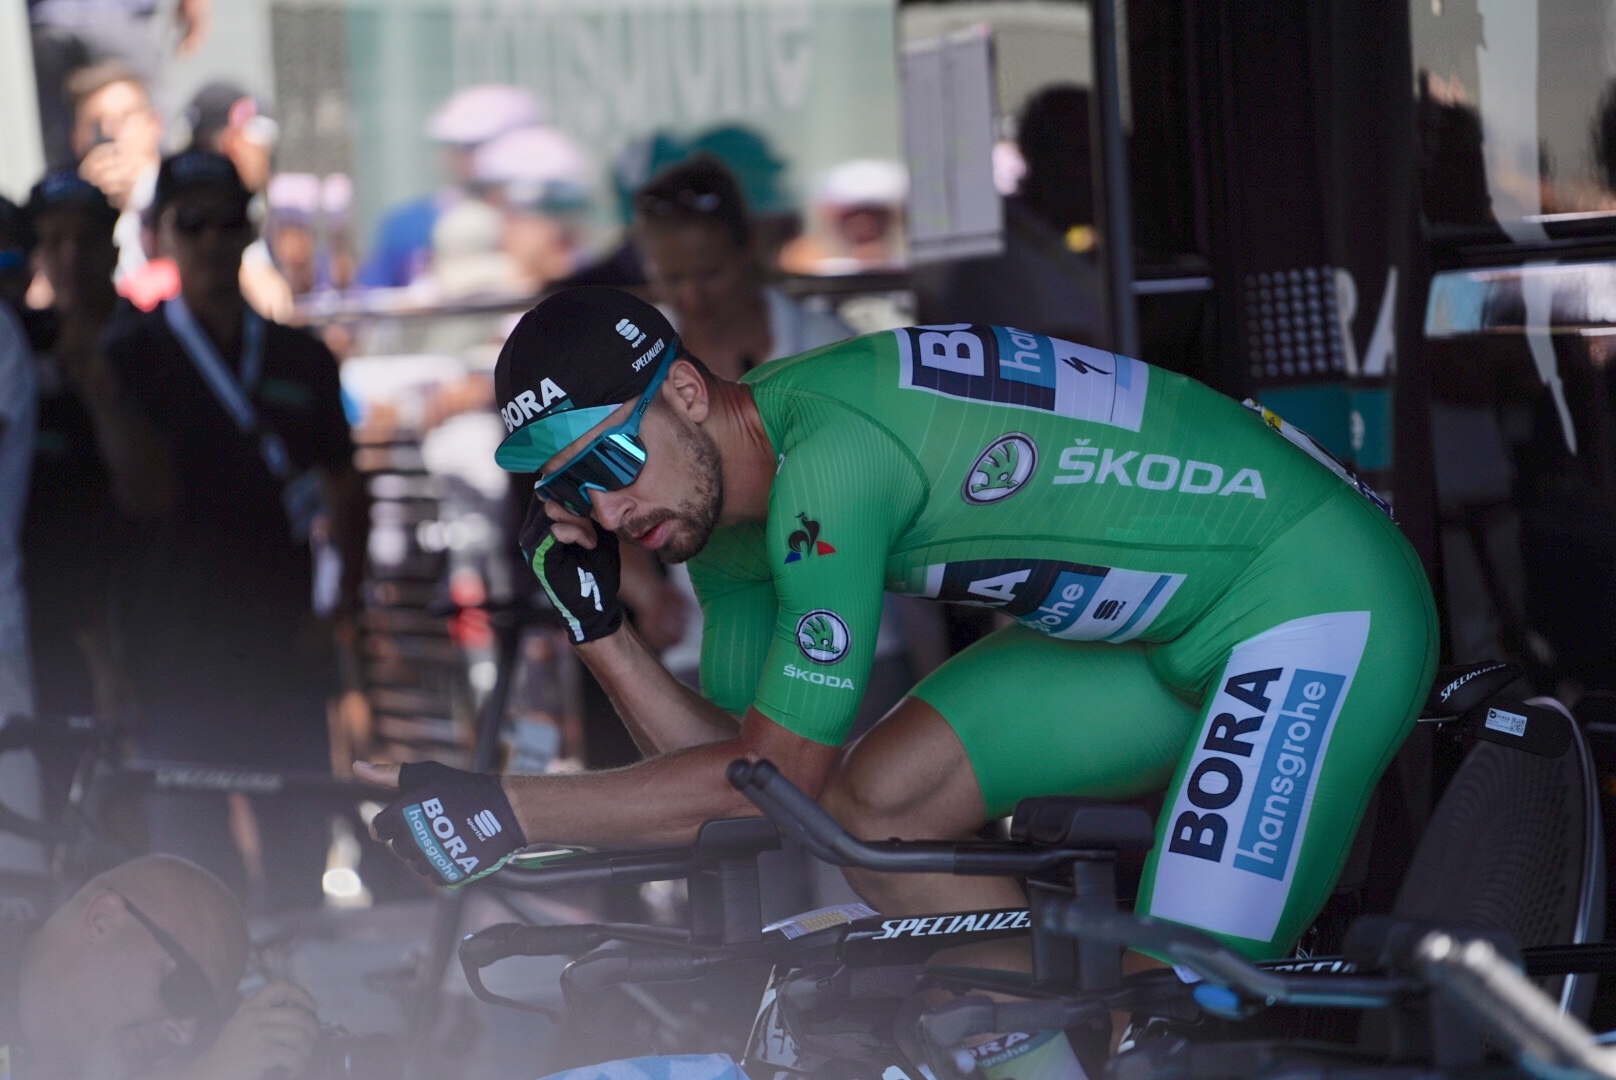 Peter Sagan warms up before the Time Trial in Pau.